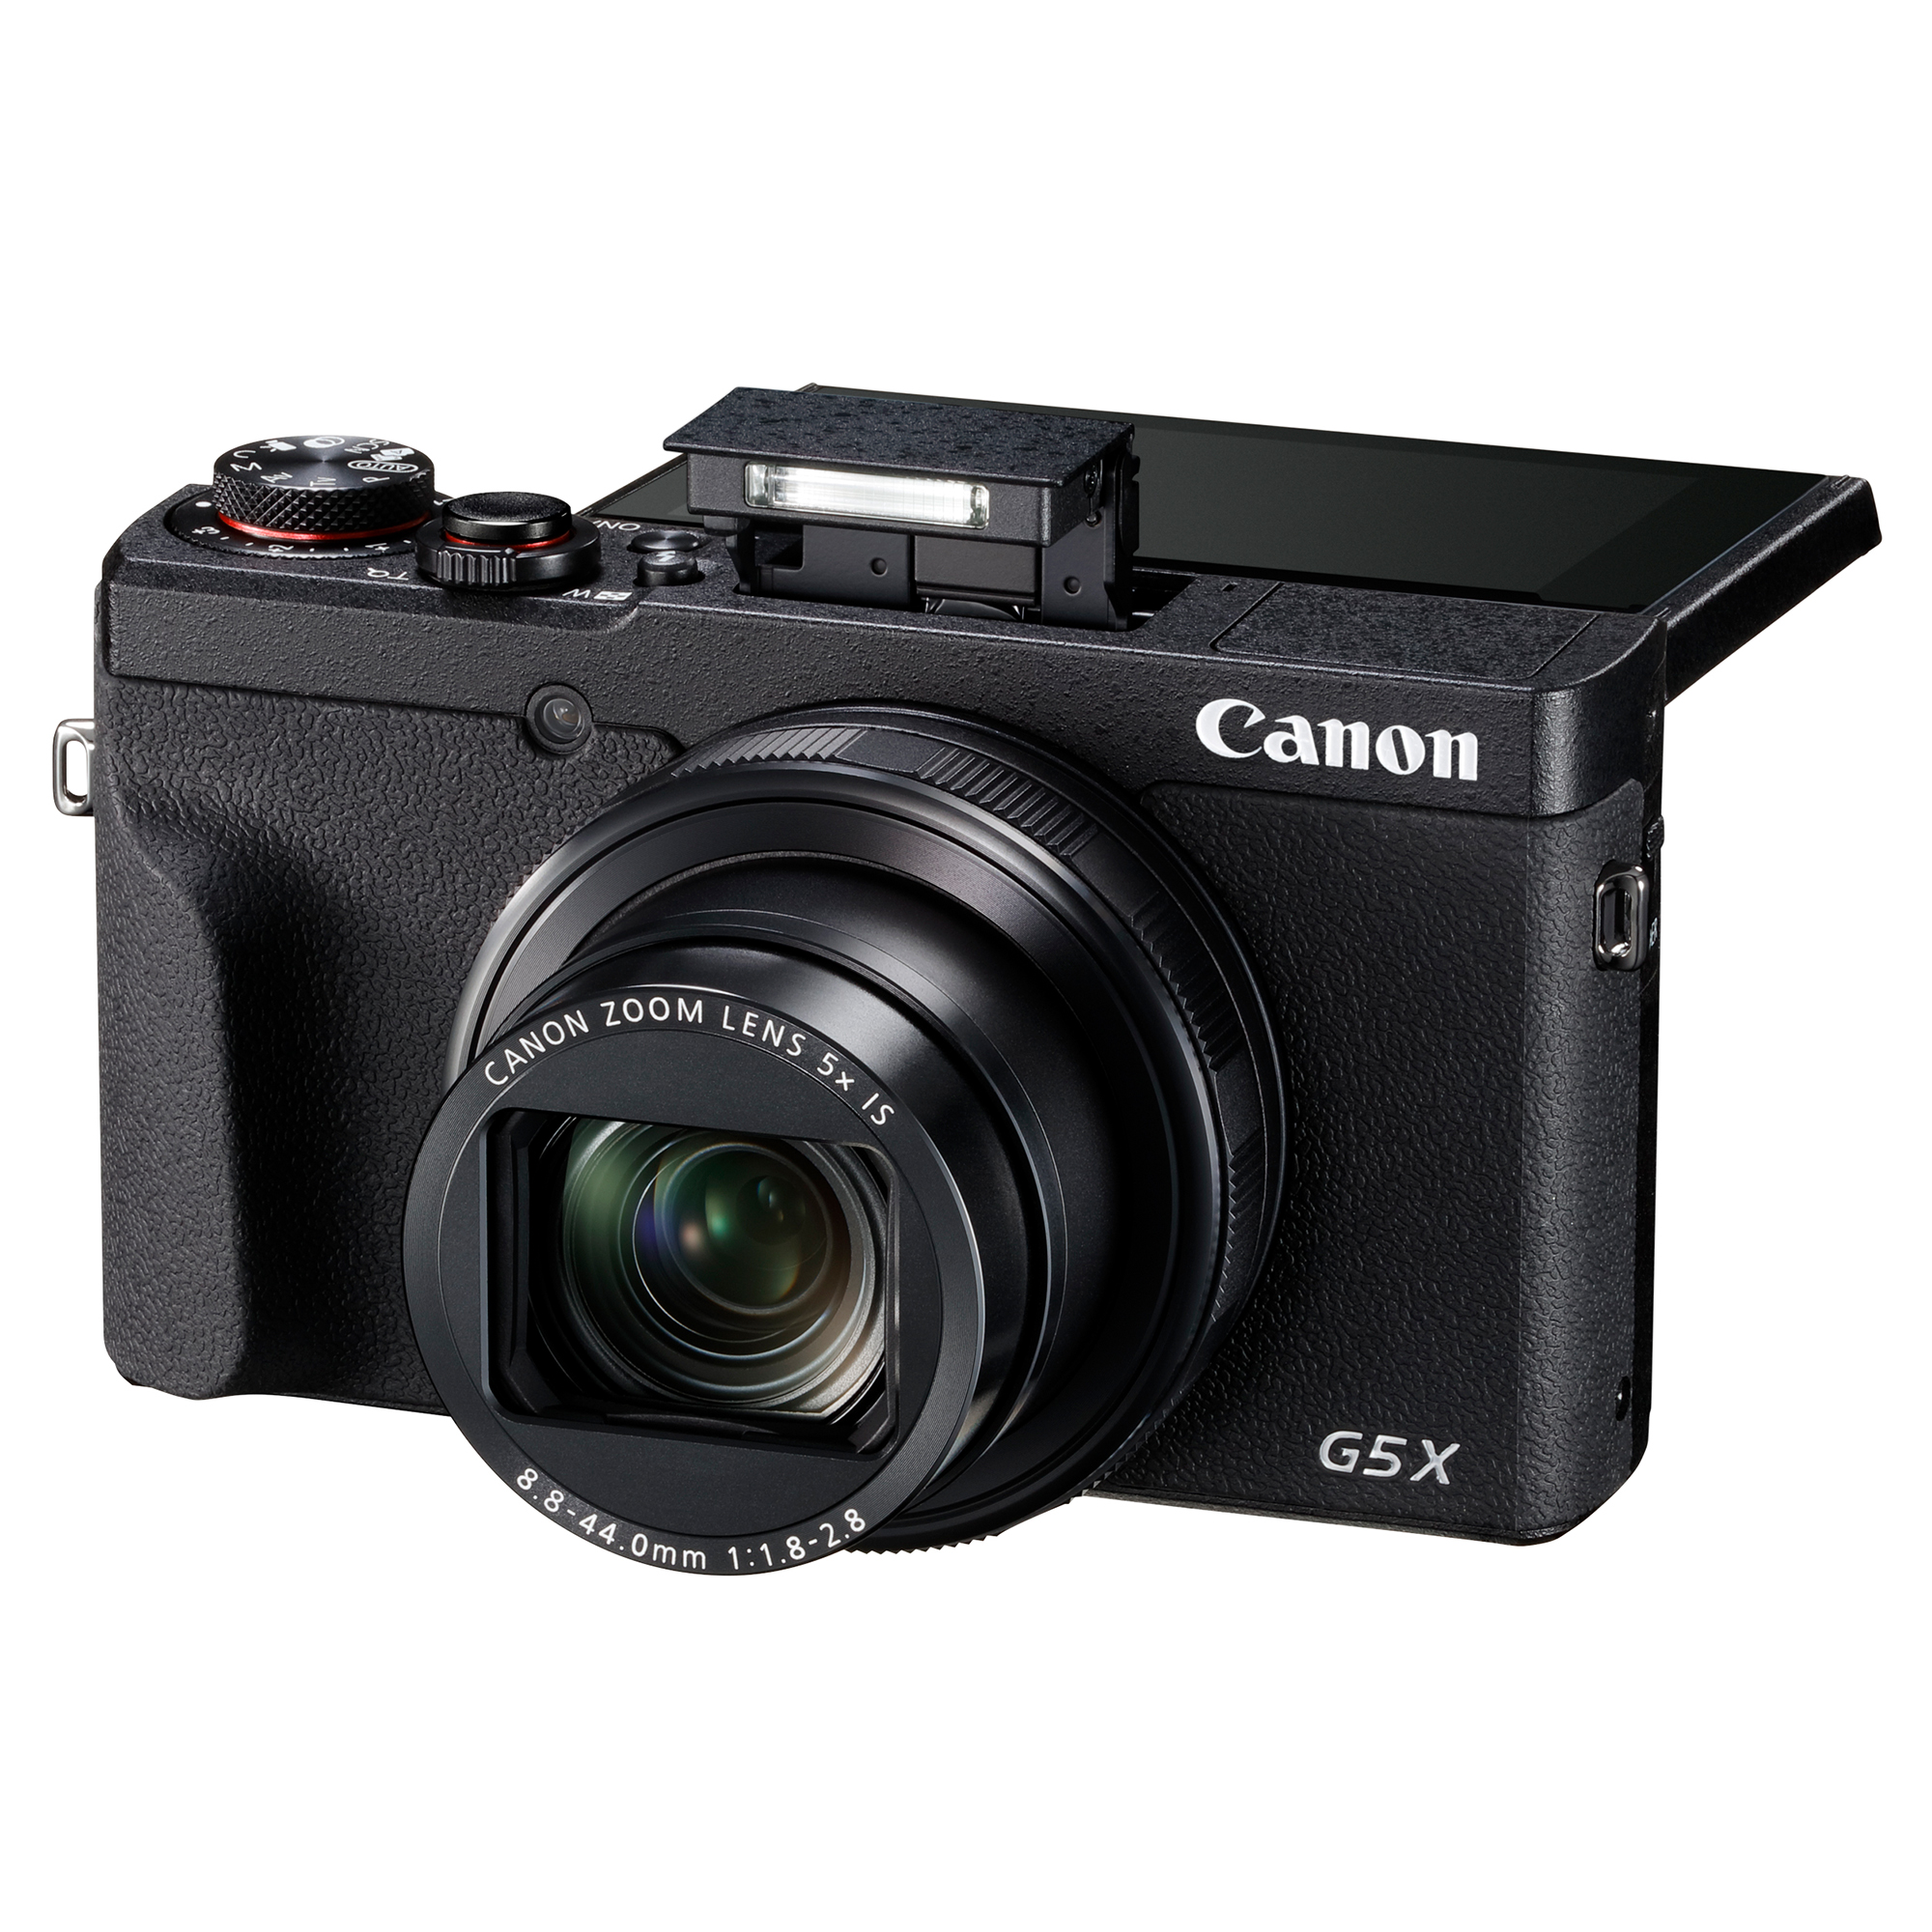 Canon PowerShot G5 X Mark II | CyberPhoto